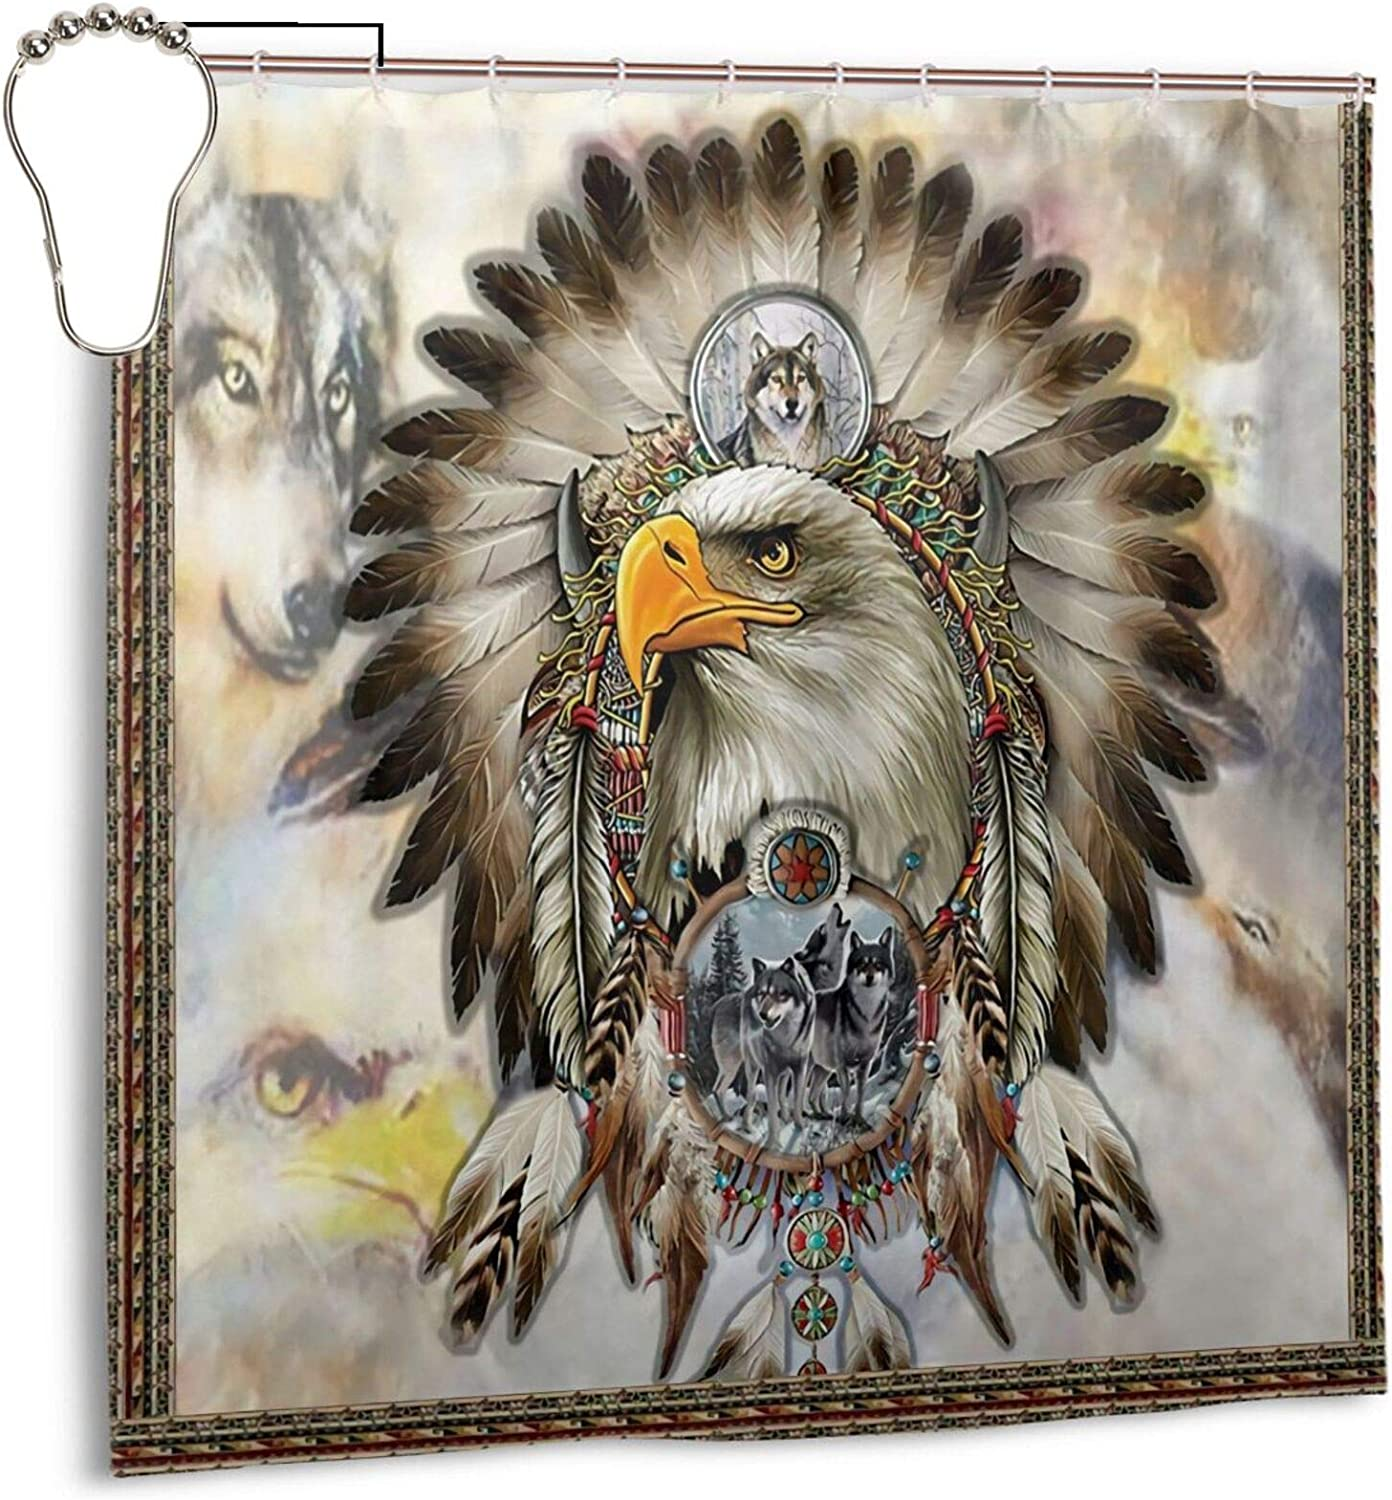 Native American Eagle and Grey Wolfs Dreamcatcher Shower Curtain,Waterproof Polyester Fabric,Bath Curtains Bathroom Decorations Home Decor Sets Beautiful Bathroom Decor with Hooks 72x72 Inch